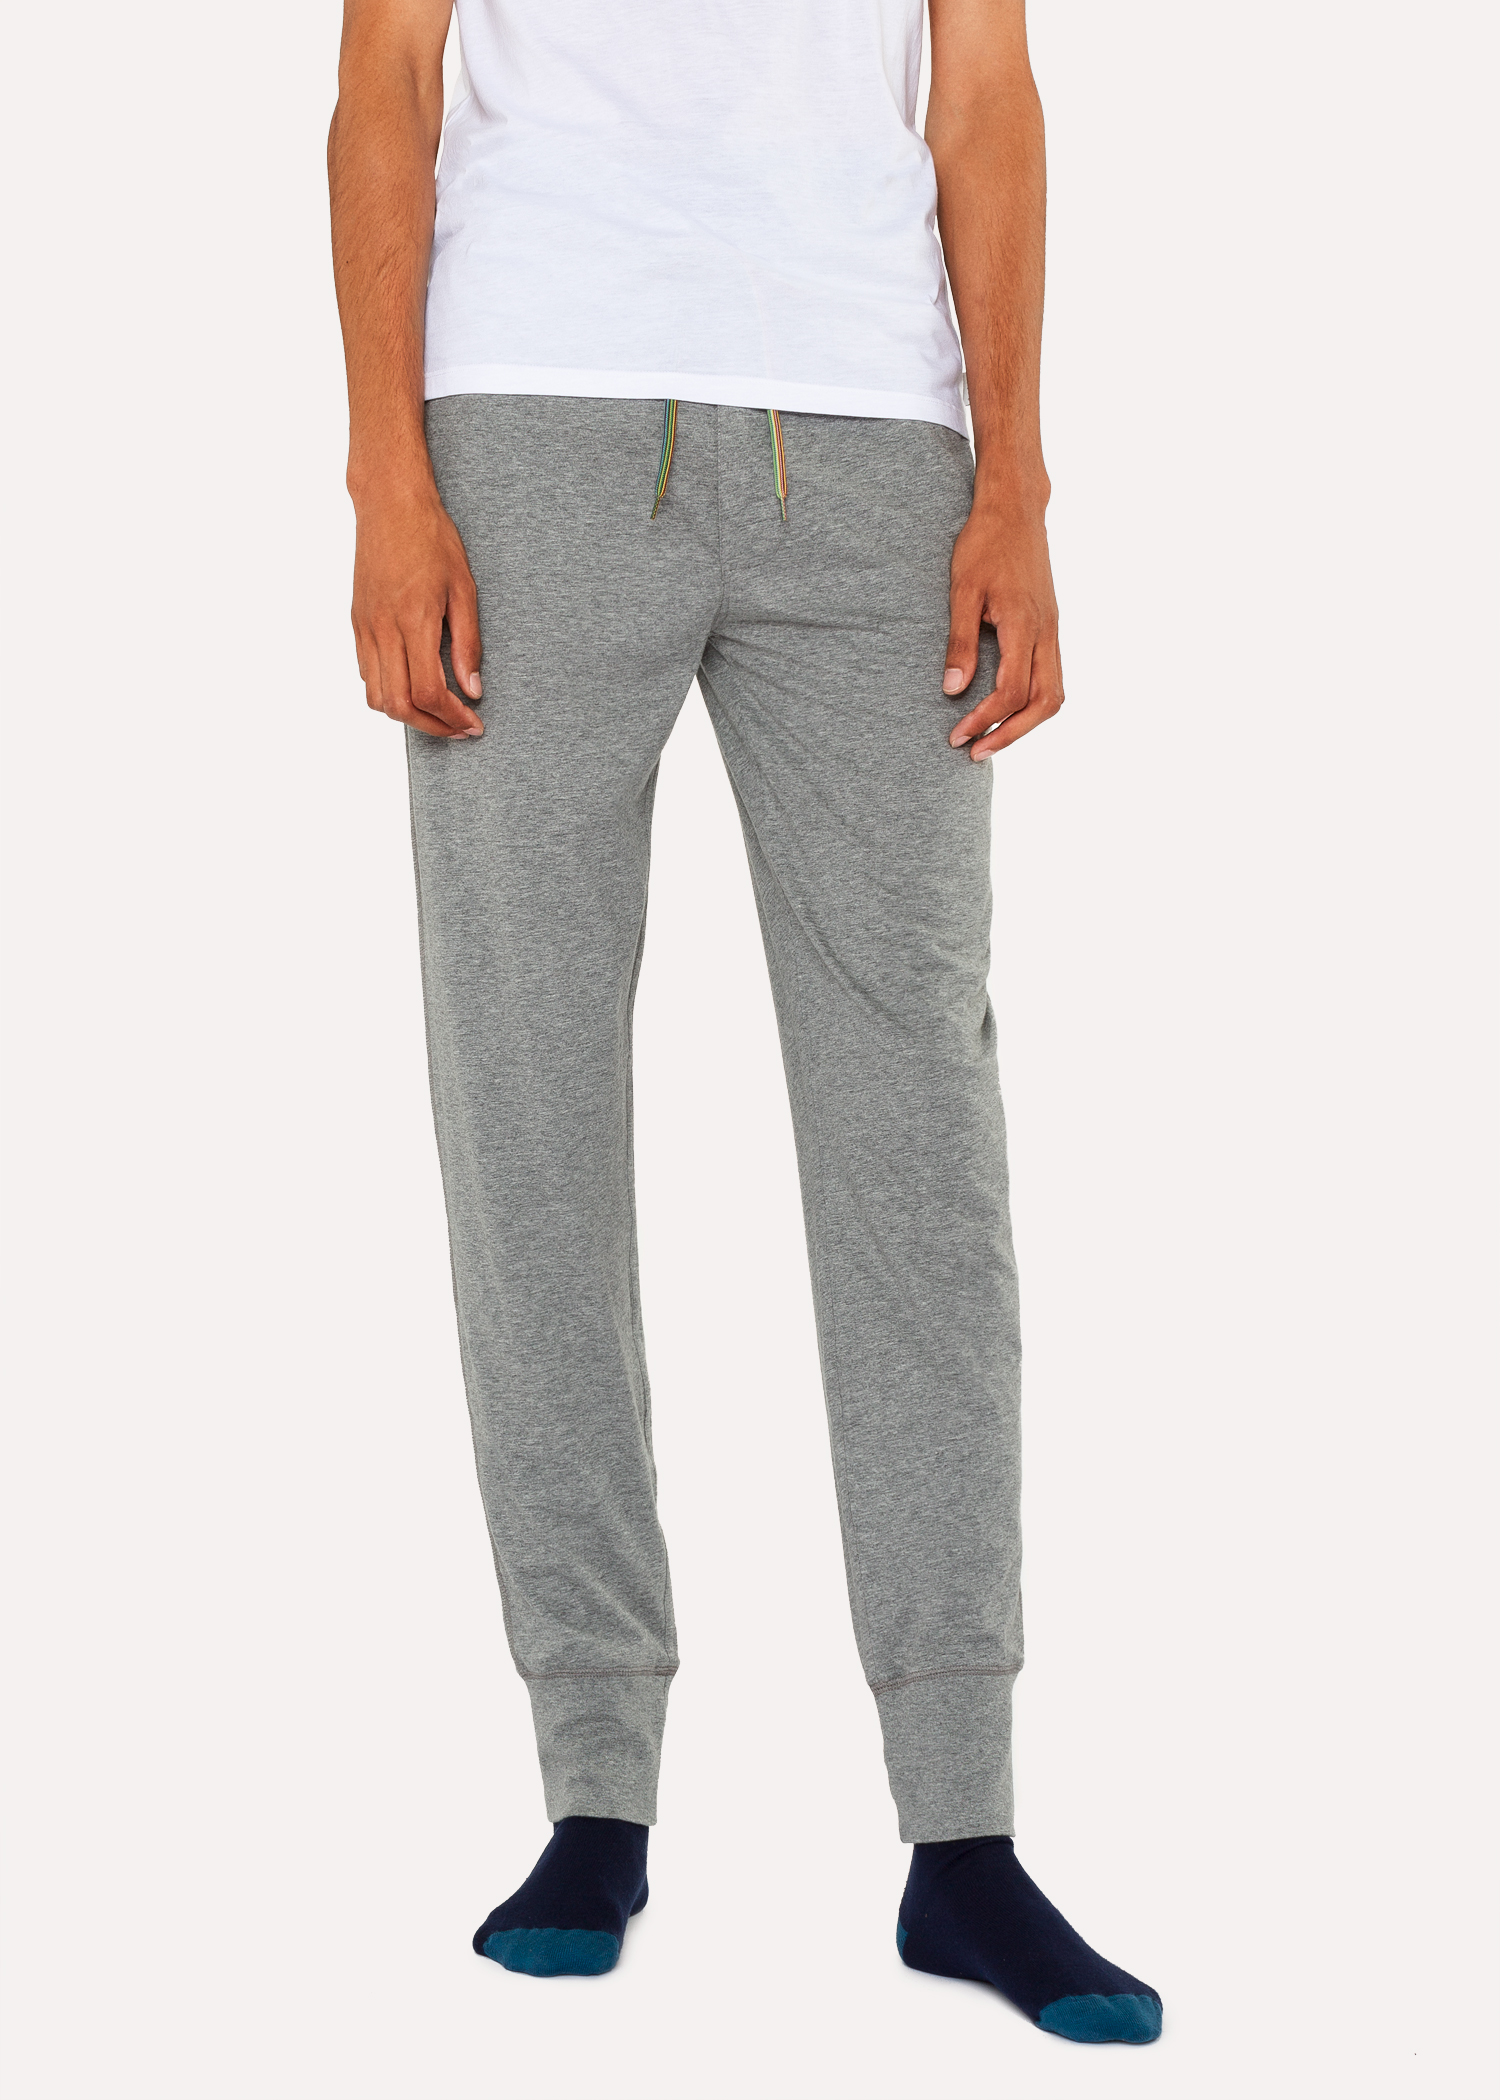 dad42bc6c3b04 Men's Light Grey Jersey Cotton Lounge Pants - Paul Smith US